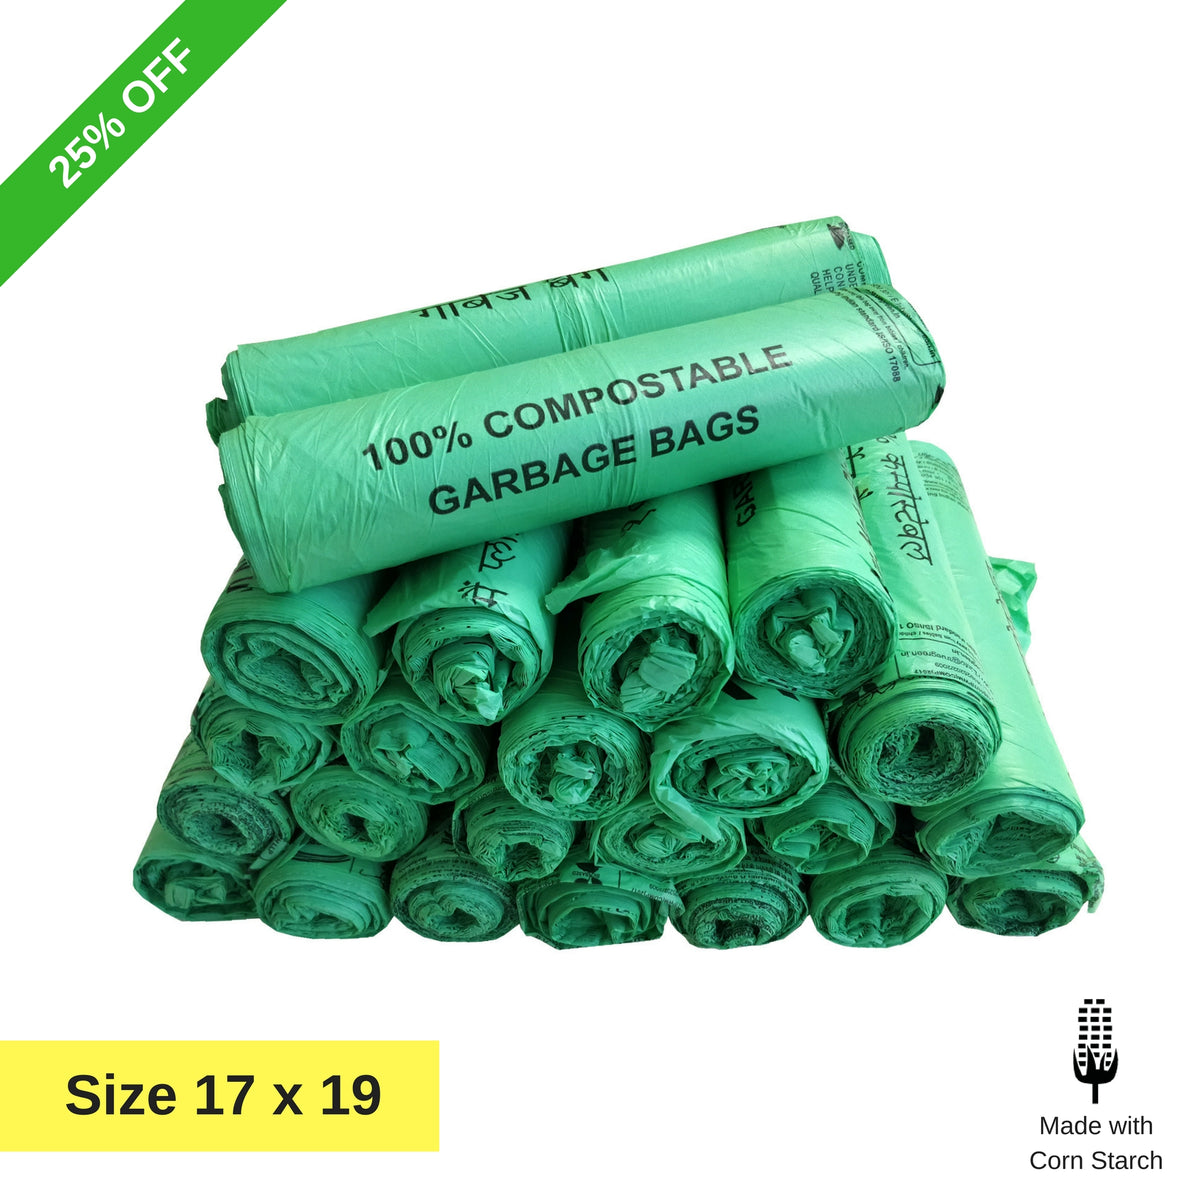 Compostable Garbage Bag Made Of Corn Starch 17 X 19 Inches